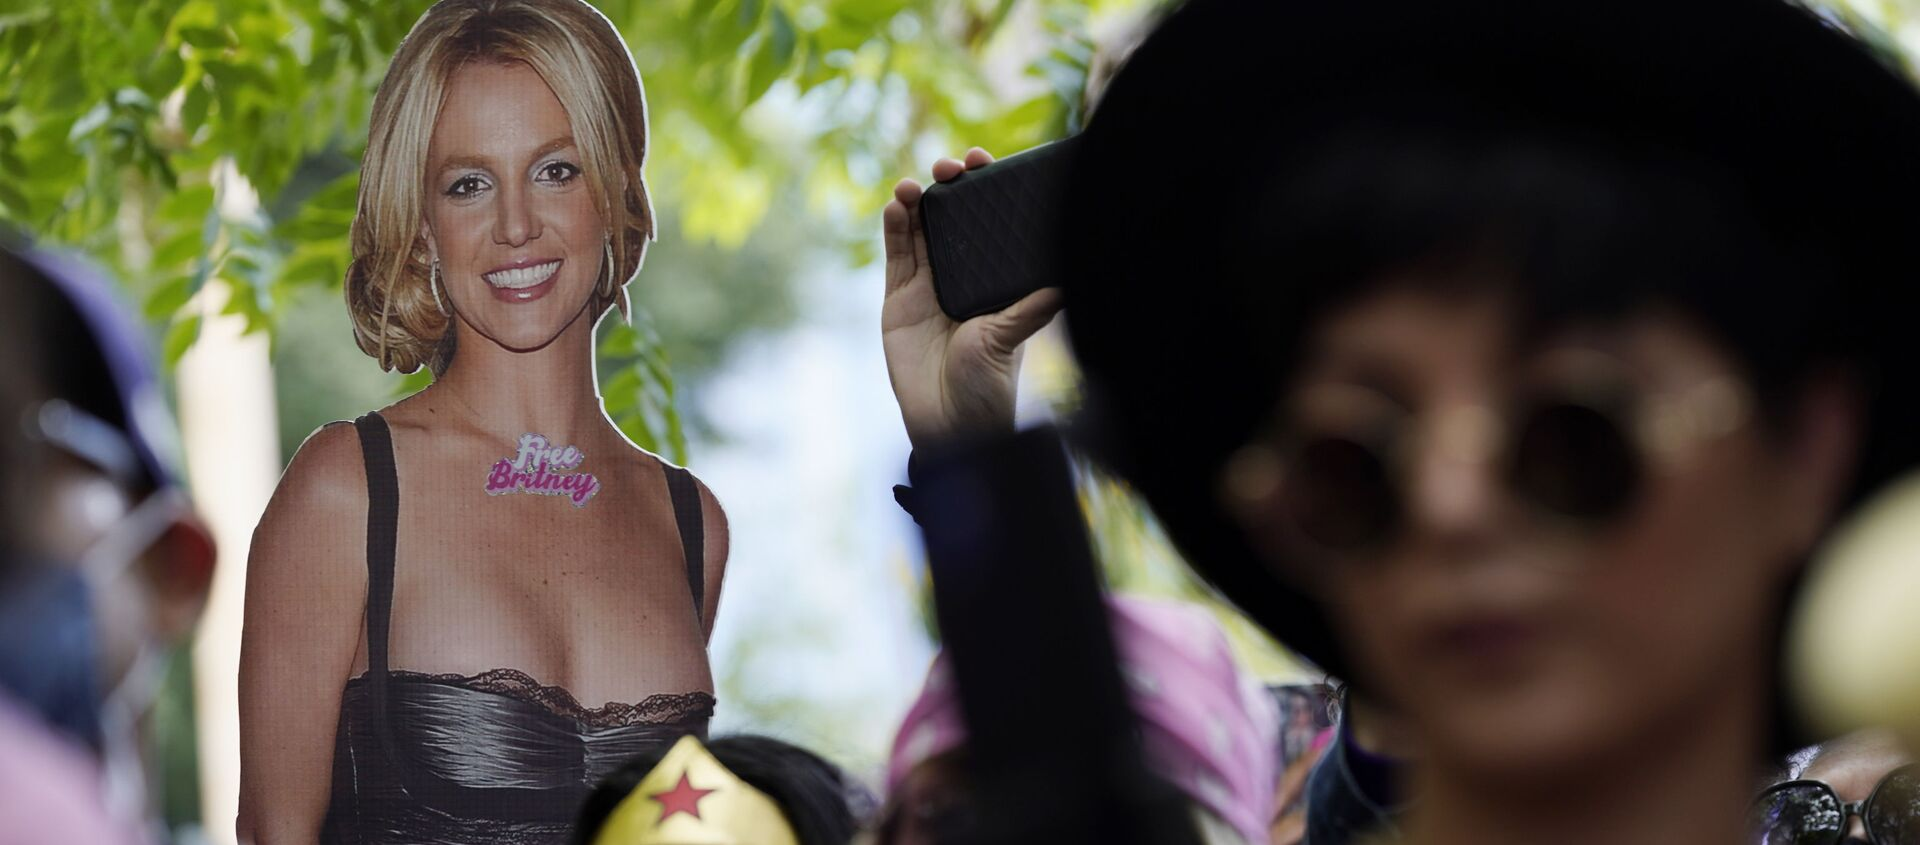 A cut-out of Britney Spears is seen in the crowd outside a court hearing concerning the pop singer's conservatorship at the Stanley Mosk Courthouse, Wednesday, June 23, 2021, in Los Angeles.  - Sputnik International, 1920, 30.07.2021